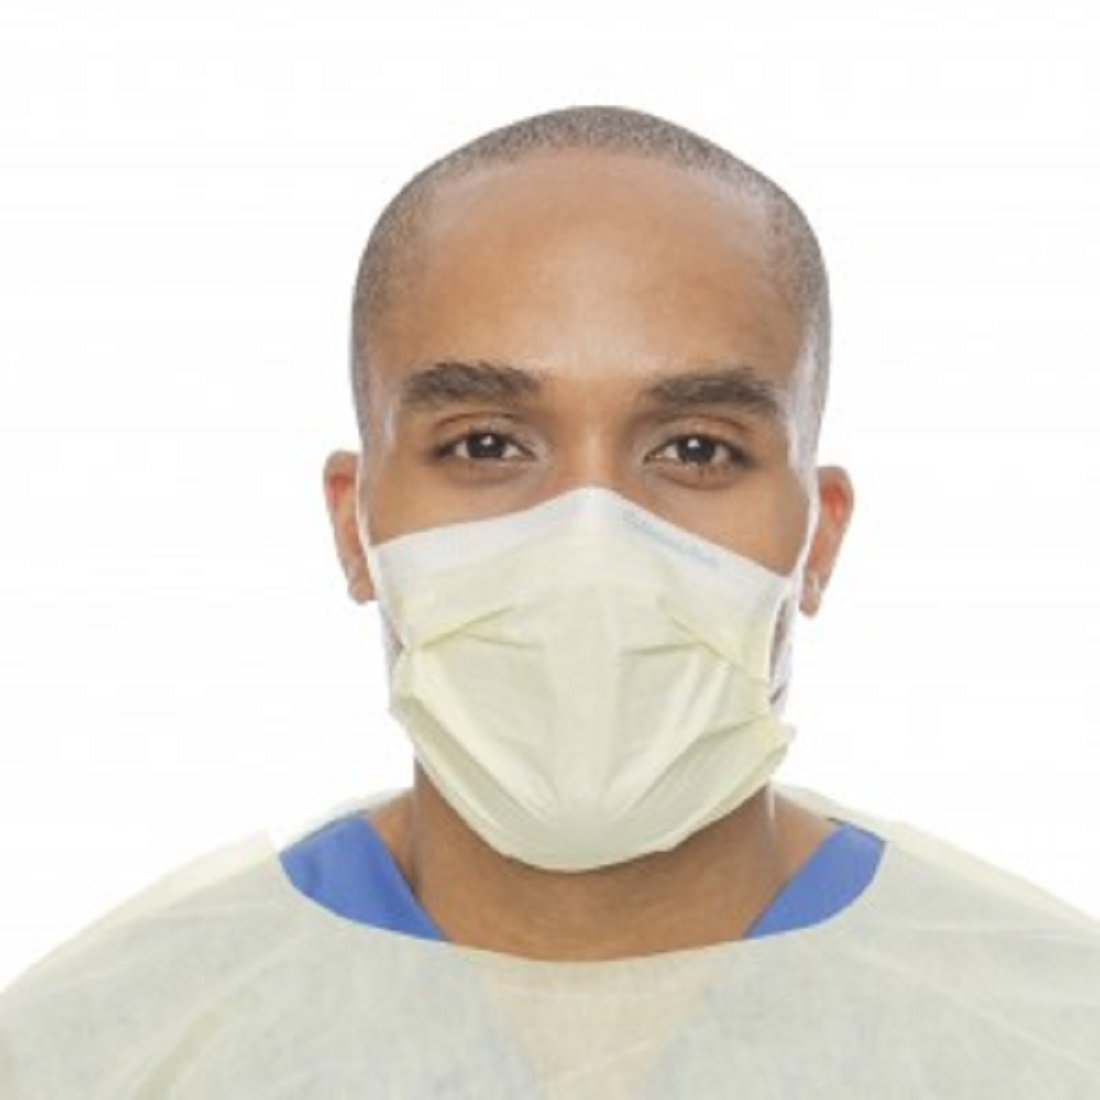 Kimberly Clark Healthcare 49700 Earloop Mask Procedure Pleated Blue 10Bx/Ca by Kimberly-Clark